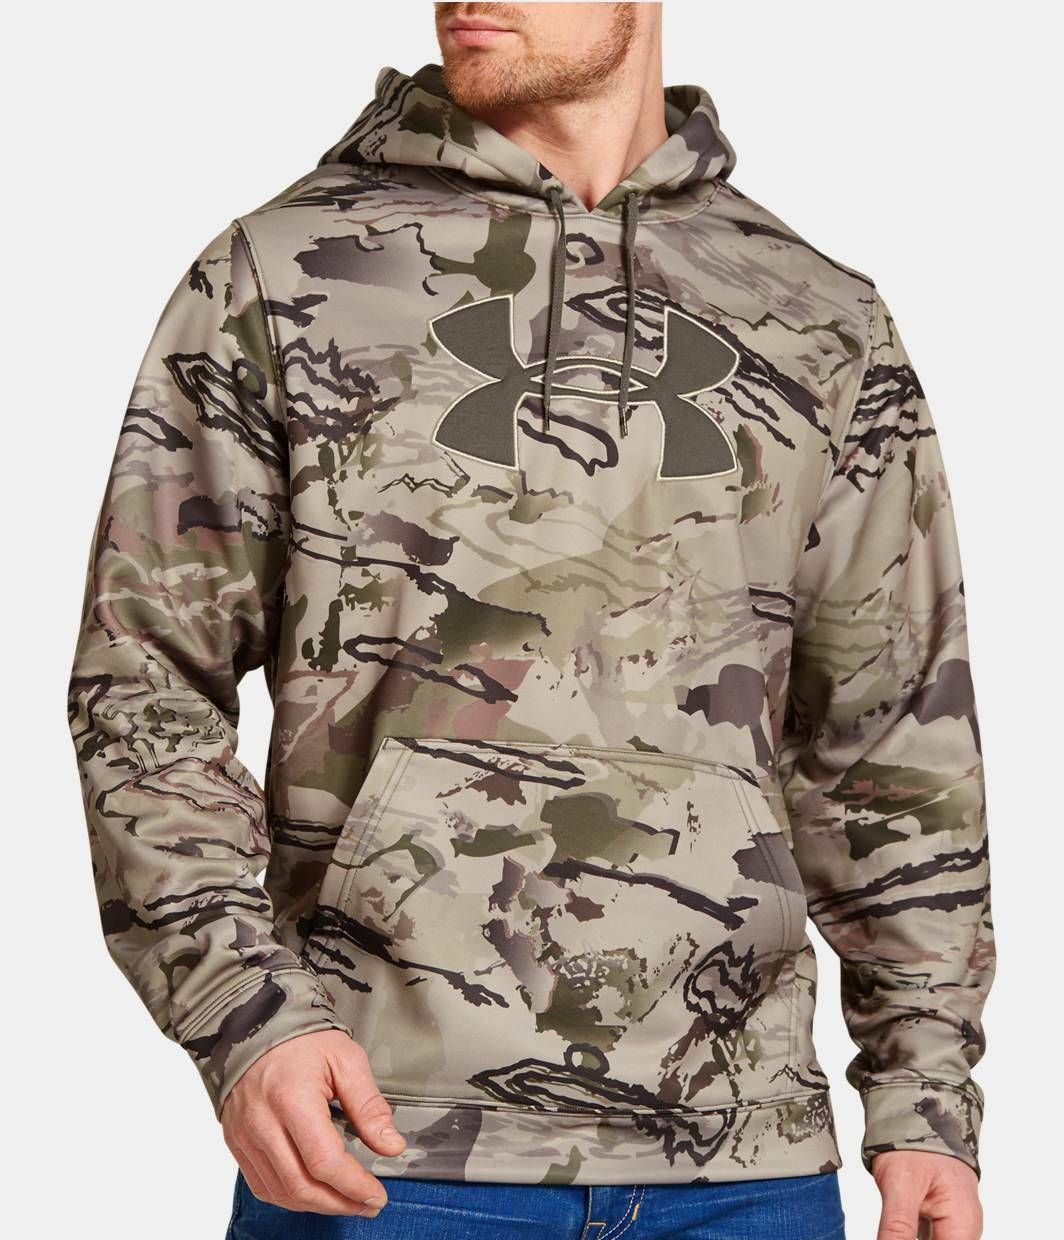 New With Tags Men S Under Armour Hunting Camo Hoodie Hooded Sweatshirt Ebay Under Armour Hunting Camo Hoodie Under Armour Hoodie [ 1240 x 1064 Pixel ]